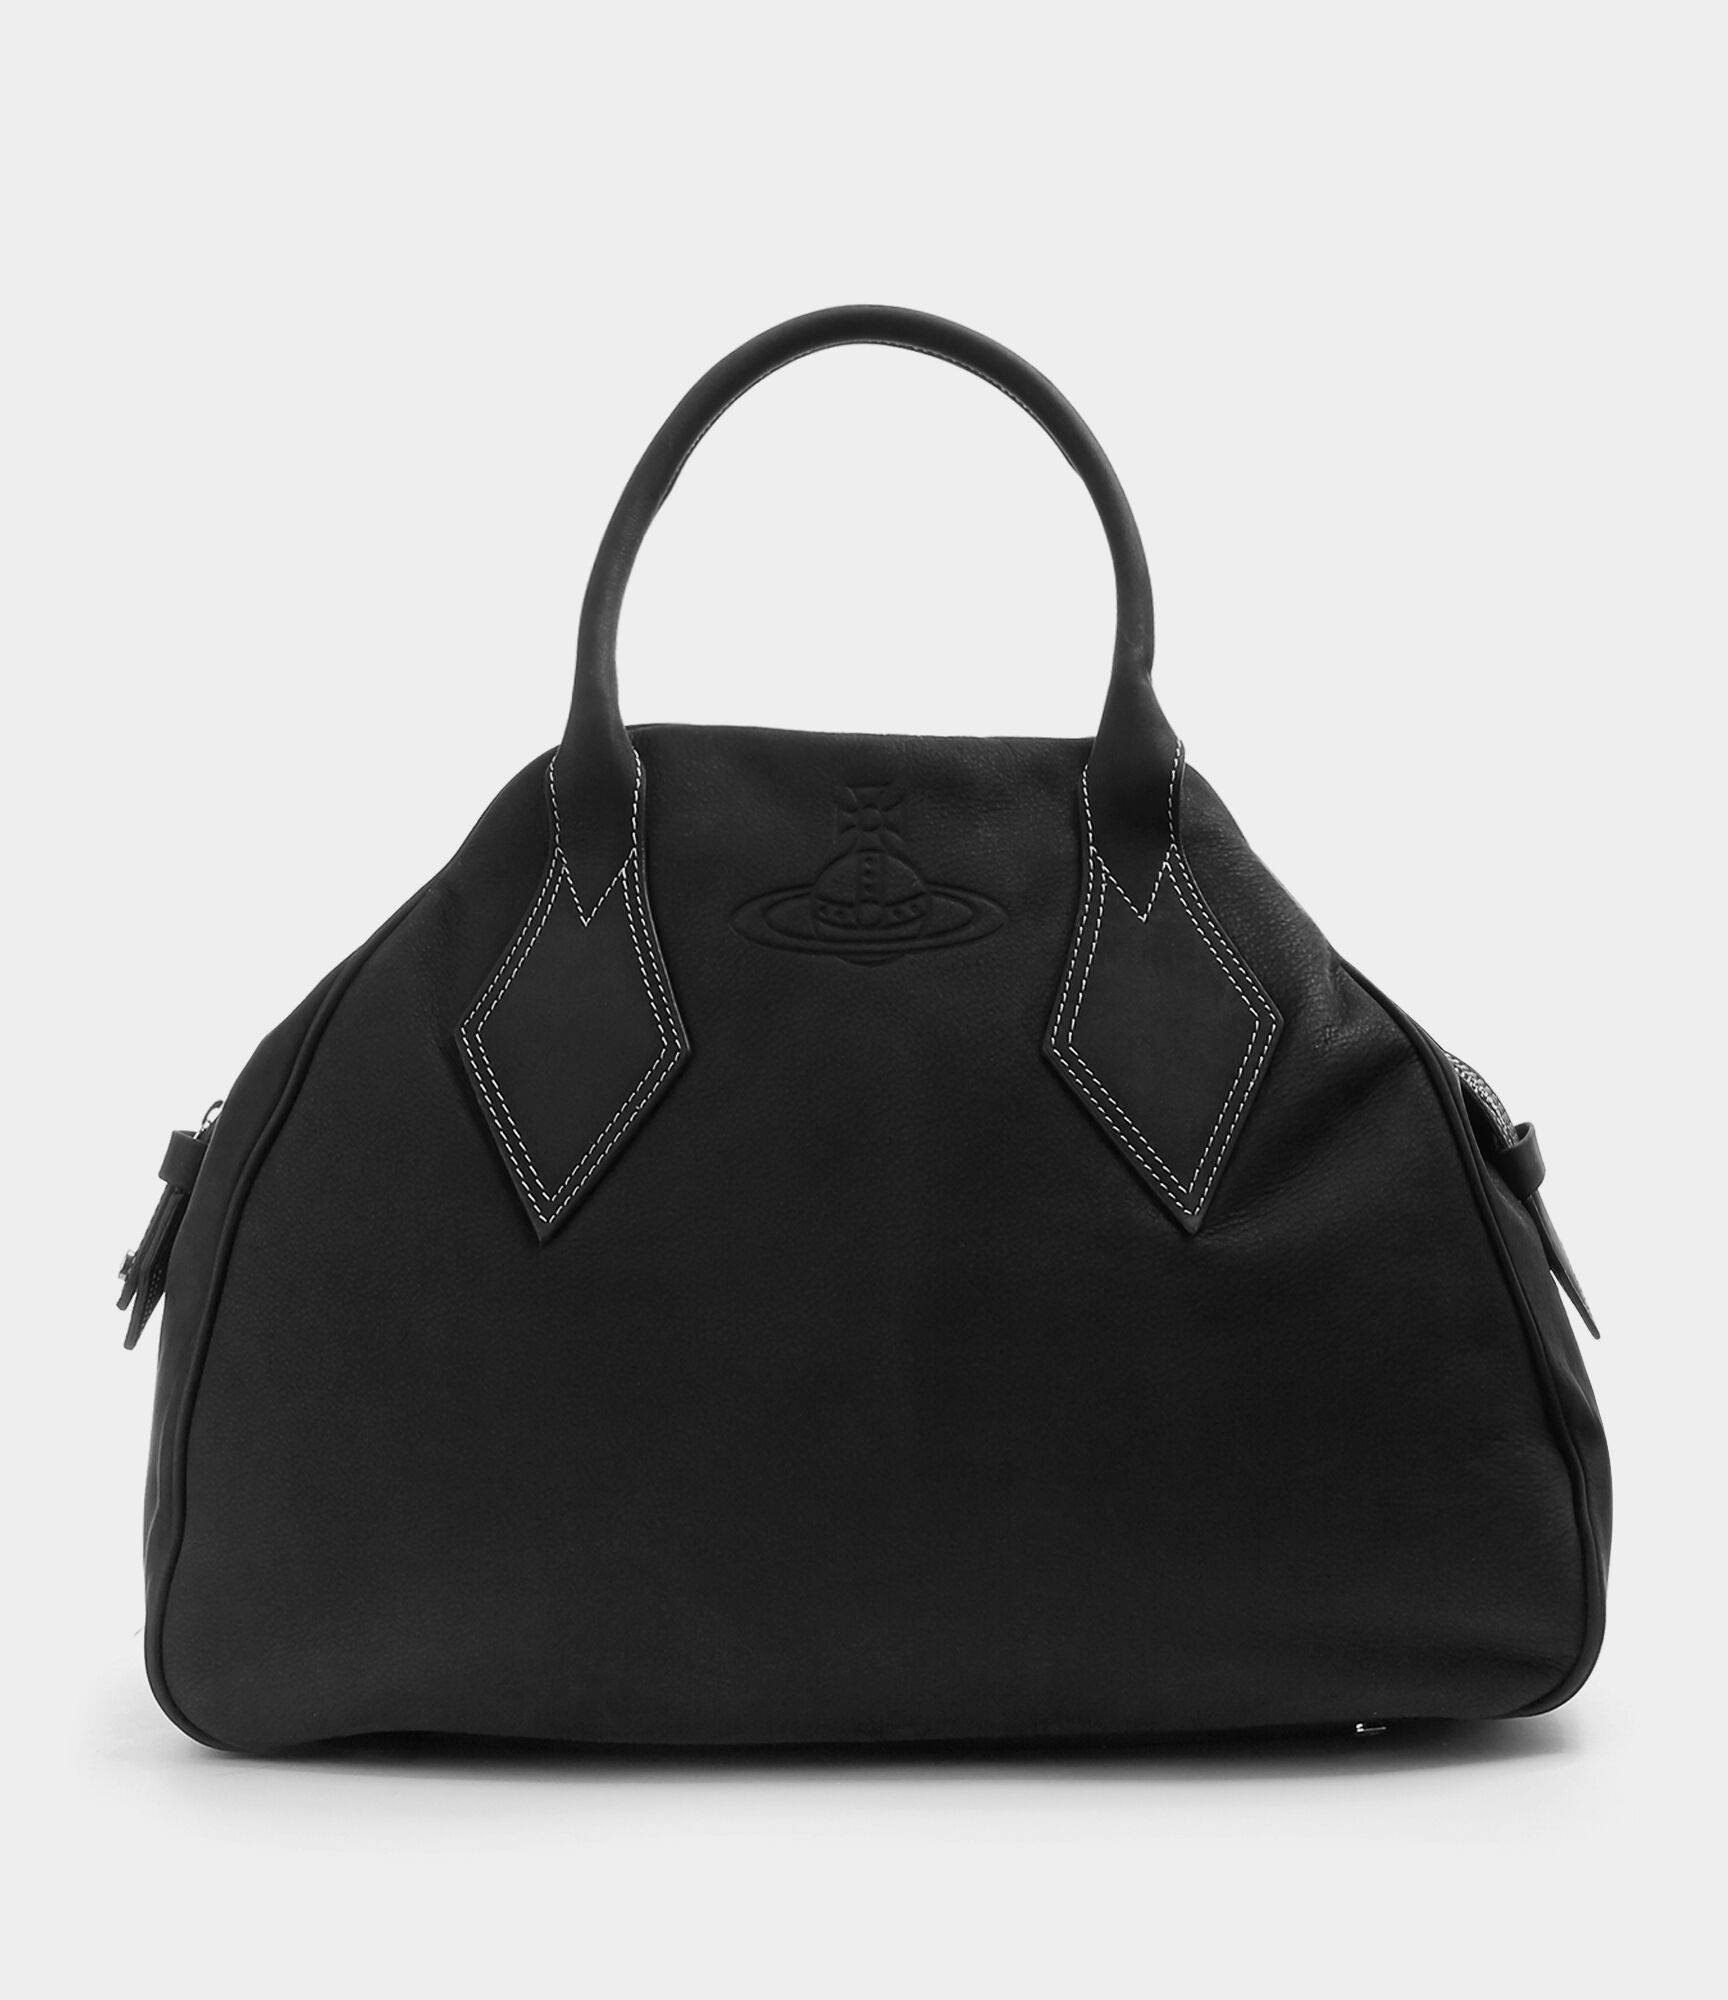 VIVIENNE WESTWOOD Large Yasmine Bag Black